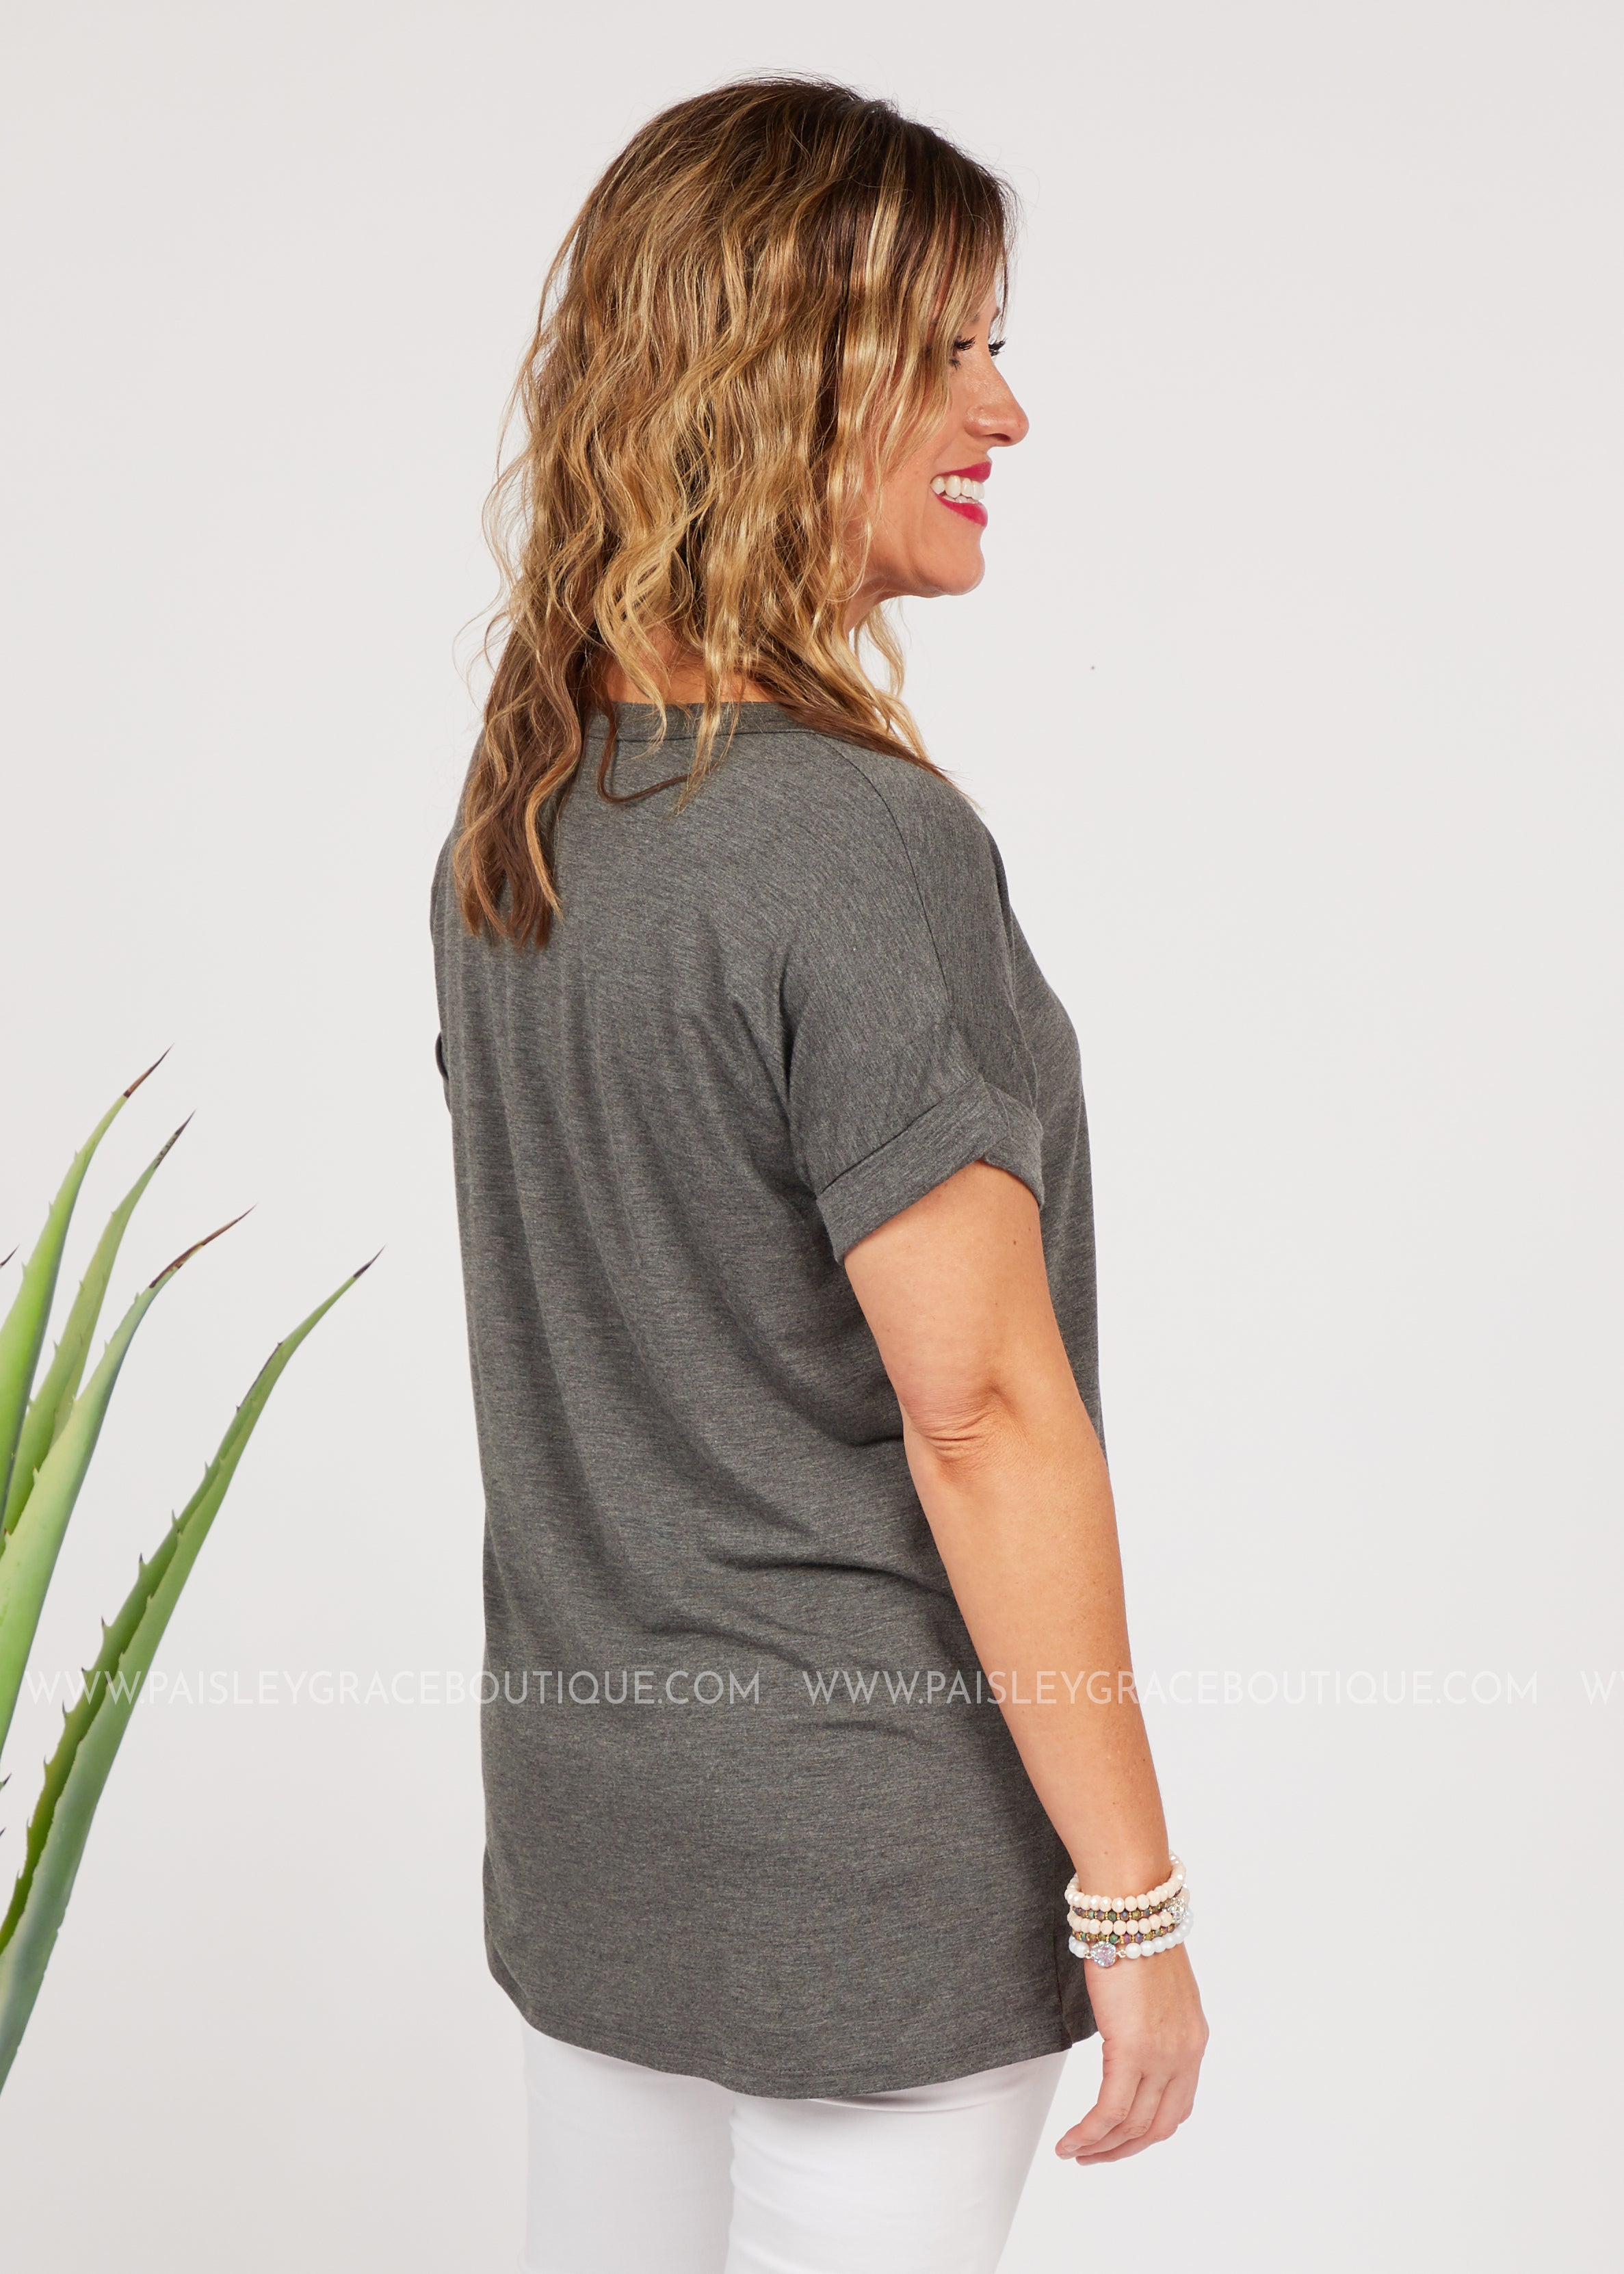 Basic Needs Tee-GREY-RESTOCK